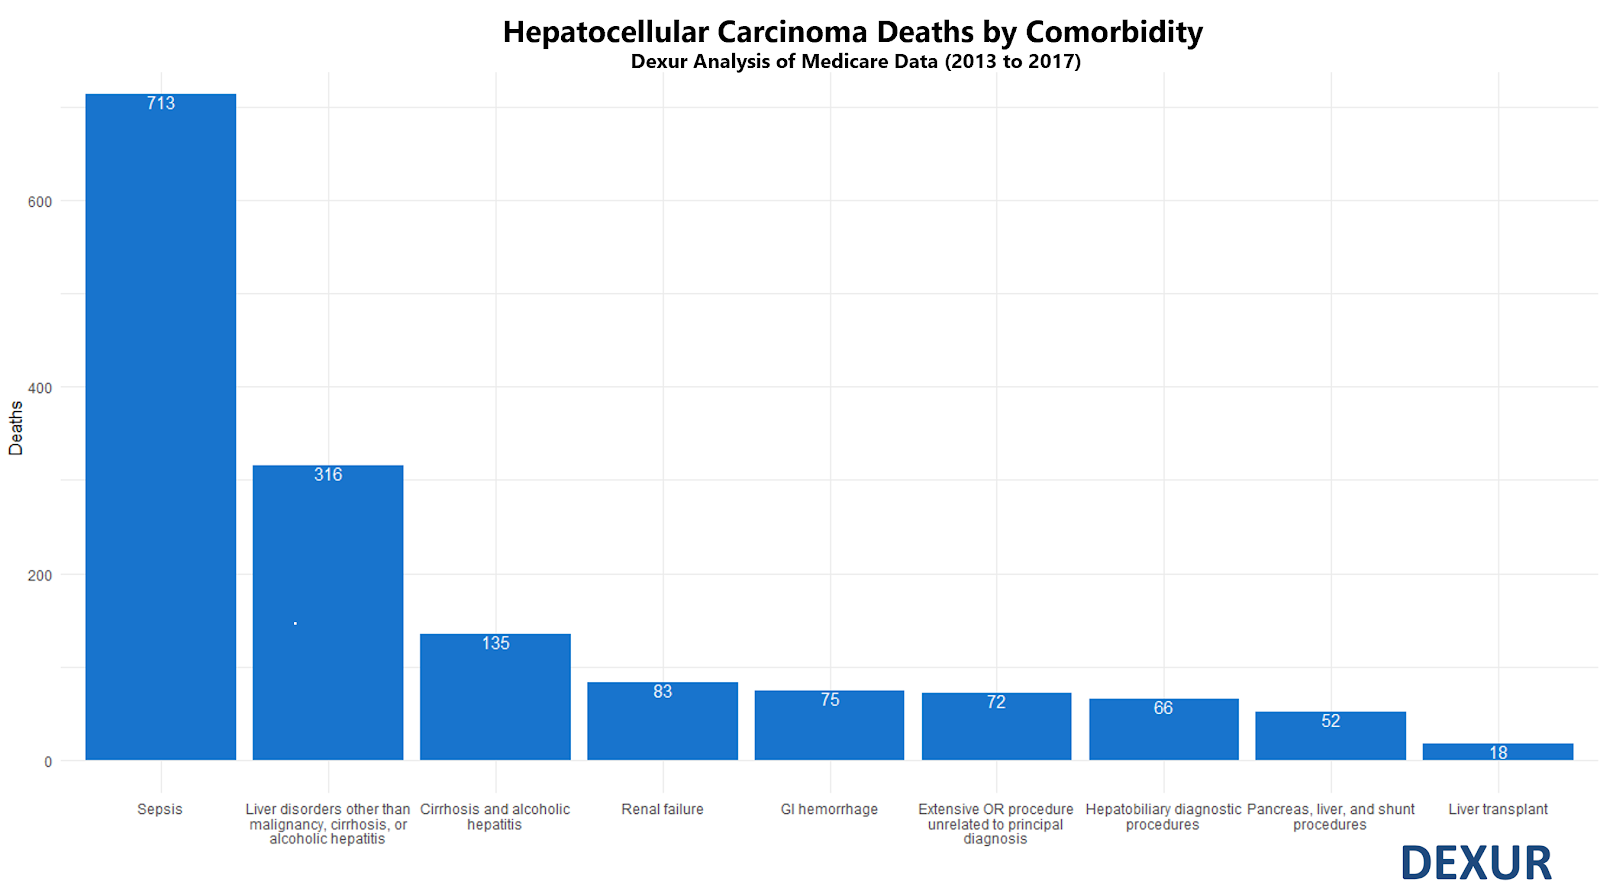 Hepatocellular carcinoma deaths by comorbidity